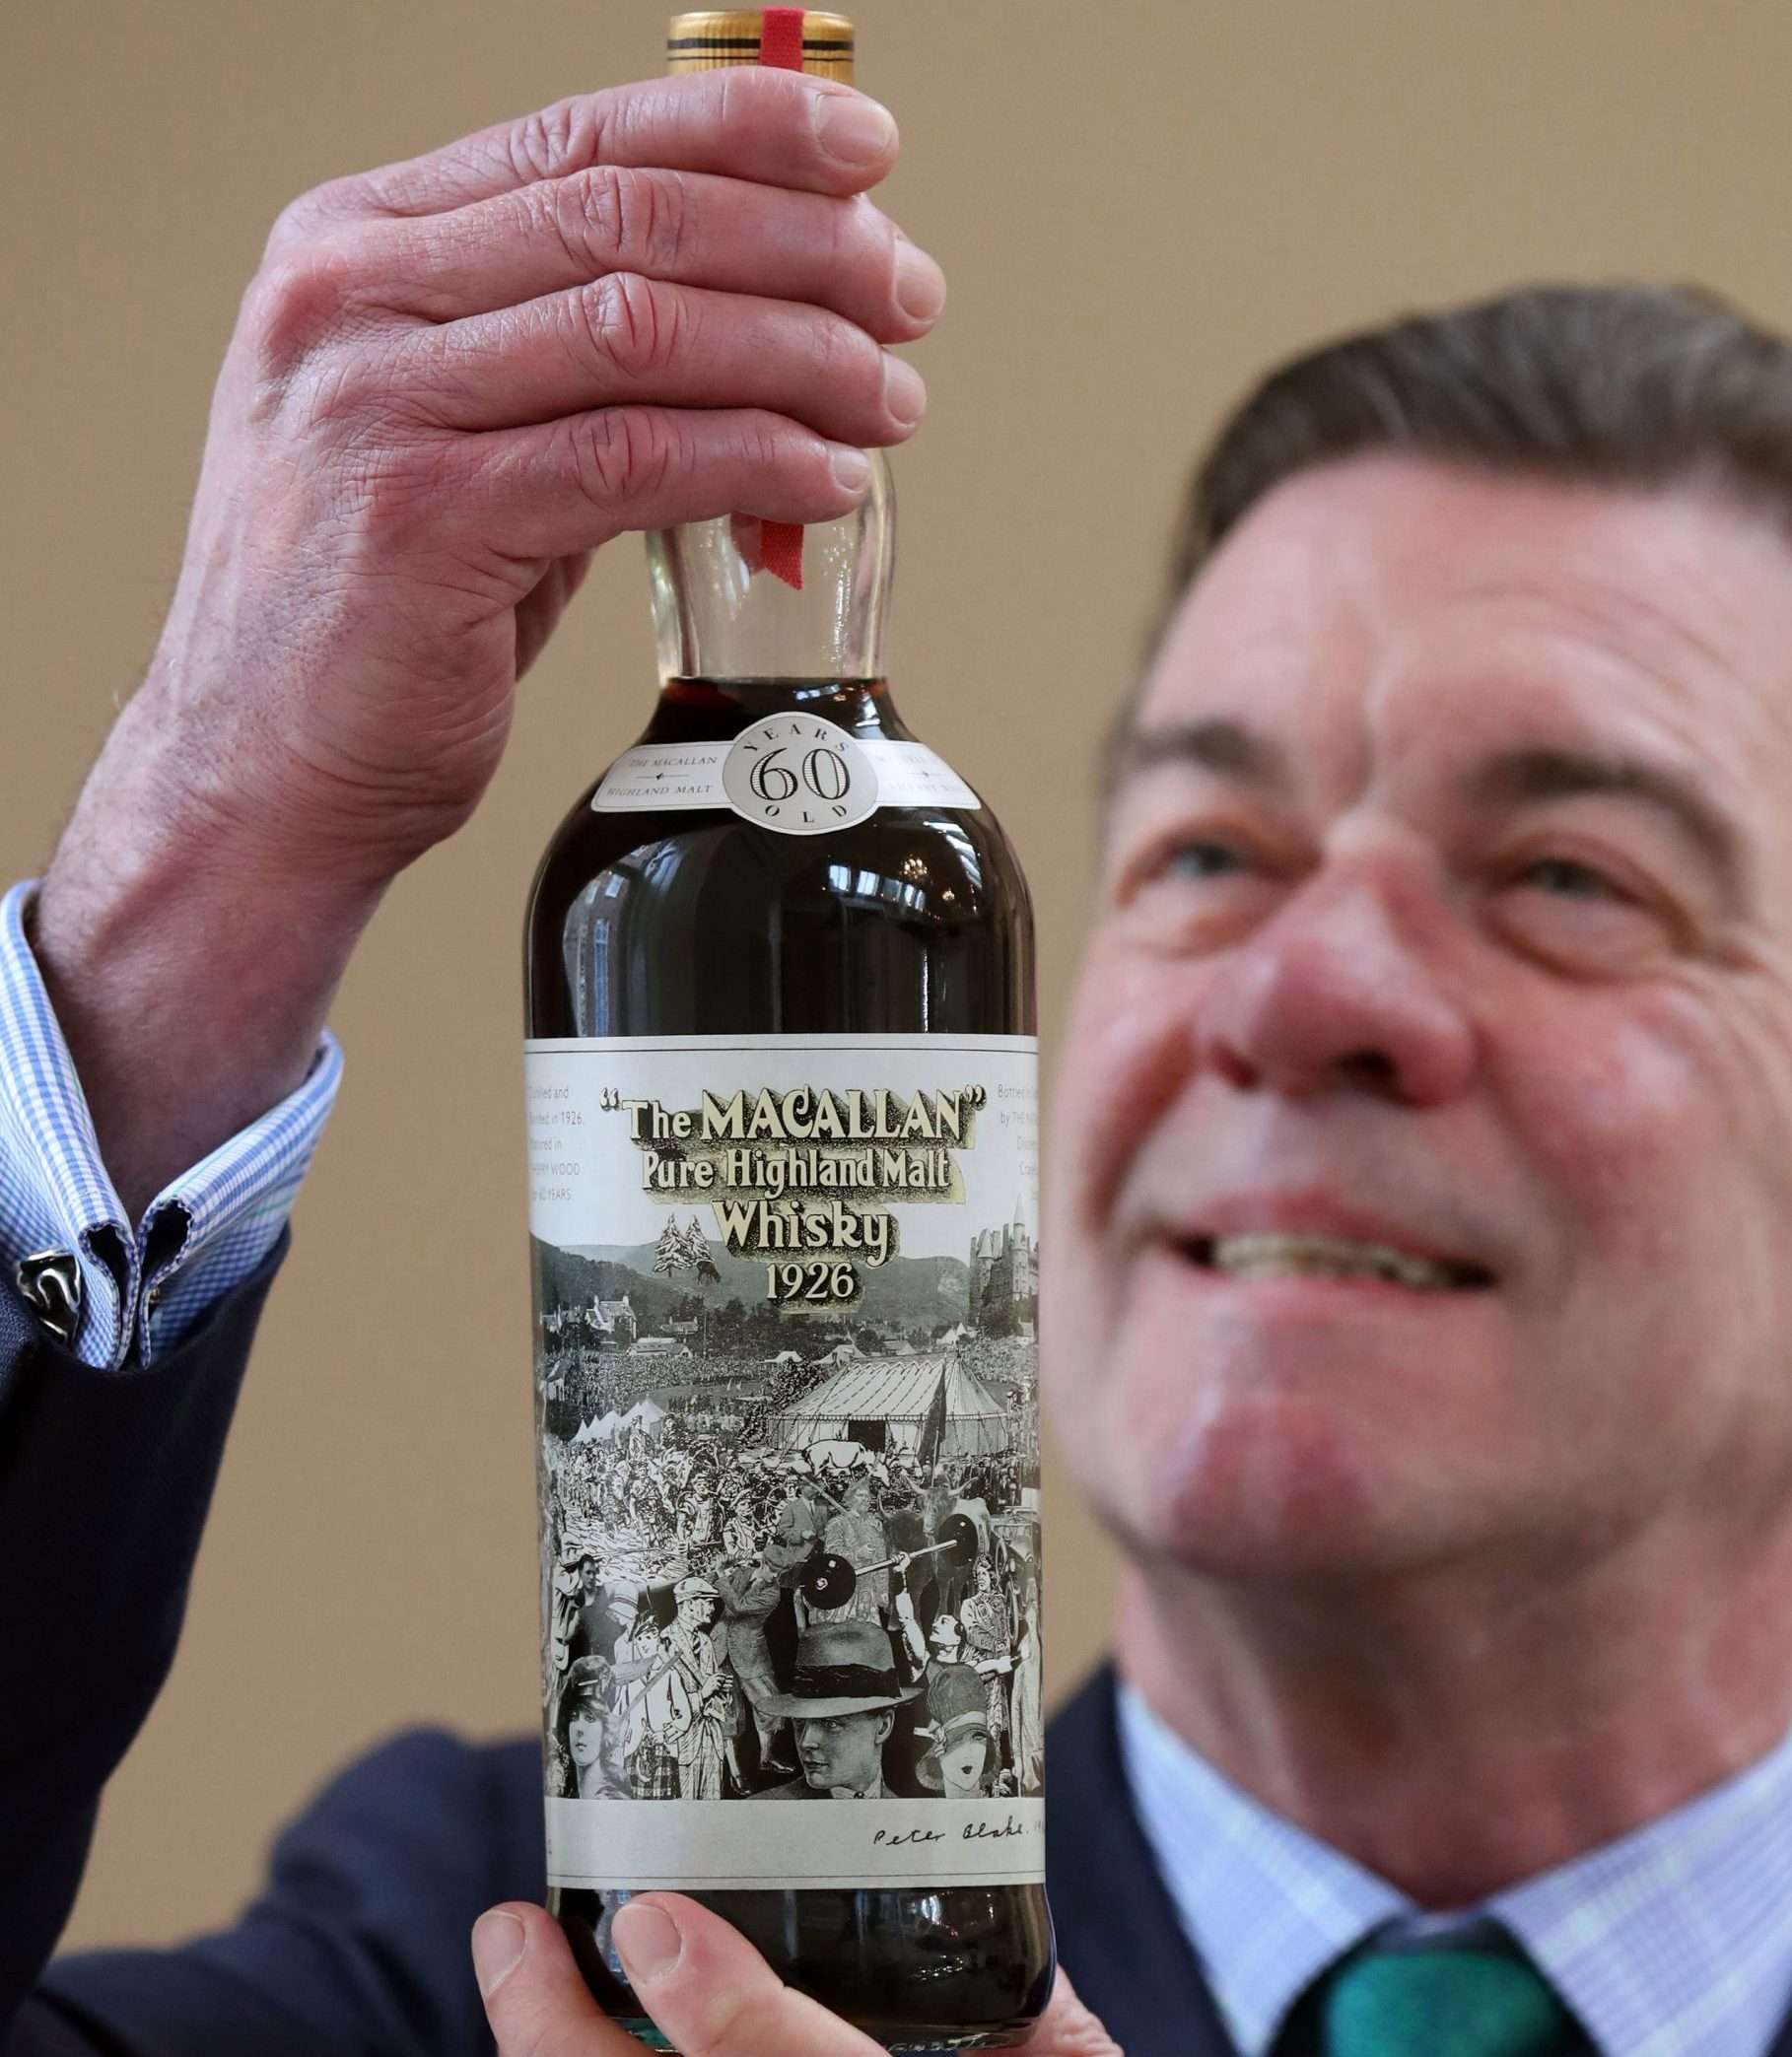 Bonhams whisky expert Martin Green with a bottle of the very rare Macallan-60 year old-1926, that has a label designed by the eminent, internationally acclaimed, British pop artist Sir Peter Blake, which is valued at ??500000-??700000 as part of Bonhams Whisky sale on Wednesday March 6. PRESS ASSOCIATION Photo. Picture date: Monday February 25, 2019. Photo credit should read: Andrew Milligan/PA Wire